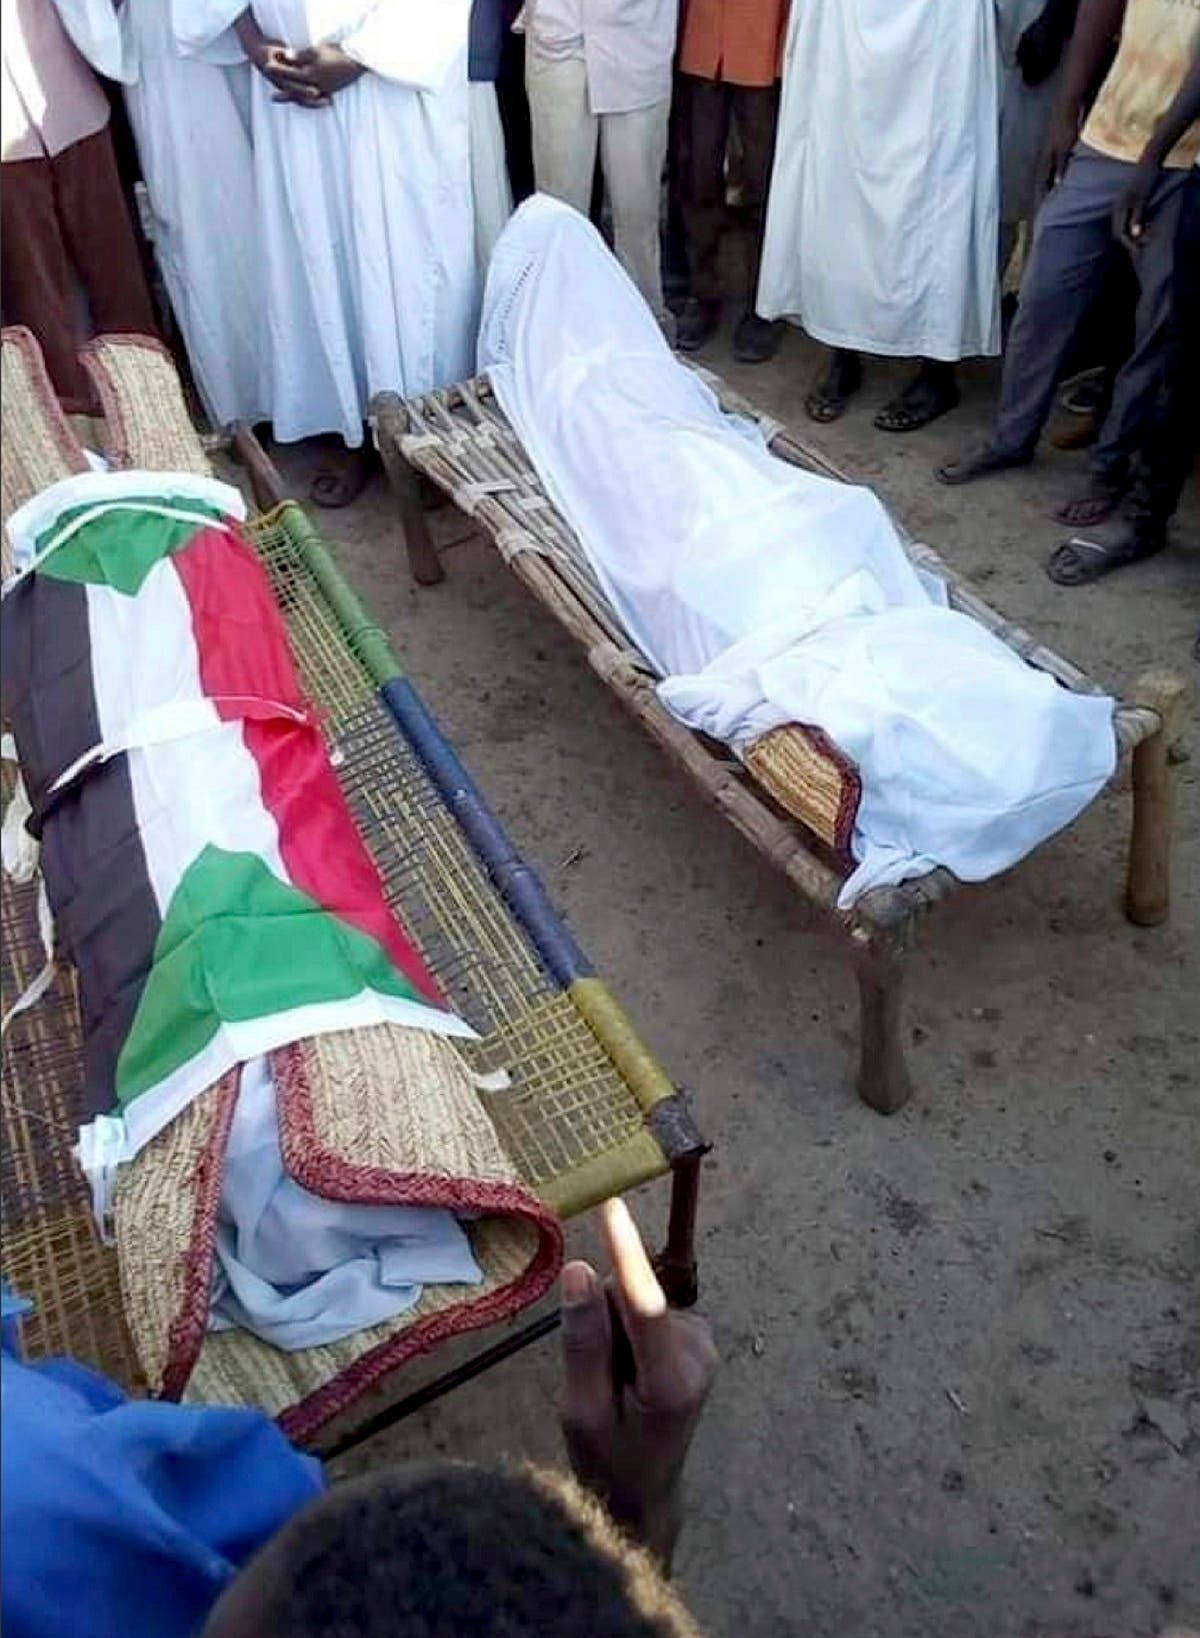 In this Friday Dec. 21, 2018 handout photo provided by a Sudanese activist, people pray in front of the bodies of 14-year old Mohammed Ismail and 10-year old Shawky Sadeq who were both killed during an anti-government protest. (AP)